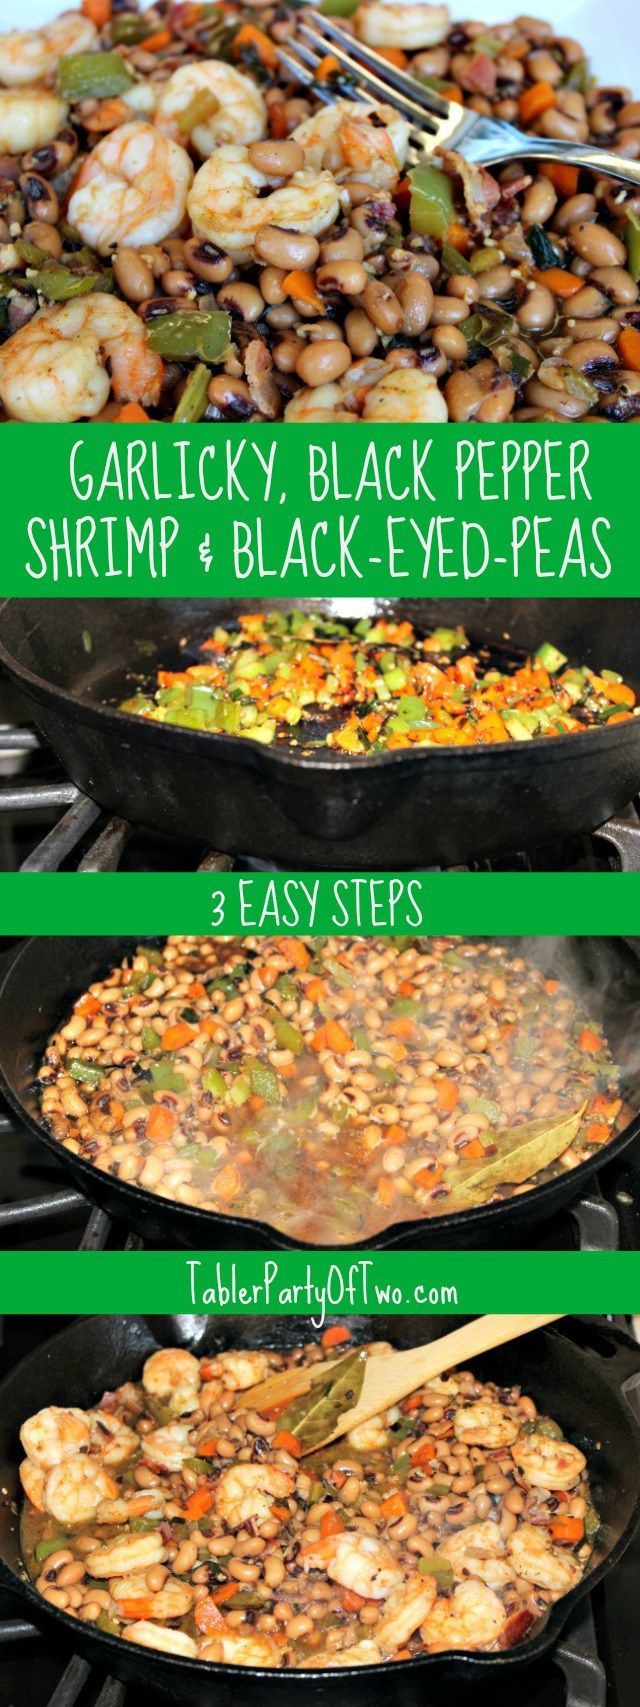 Shrimp and Black-Eyed-Peas, PERFECT for NEW YEAR'S DAY or anytime, for that matter! This recipe is easy to make and is definitely a crowd pleaser! TablerPartyofTwo.com